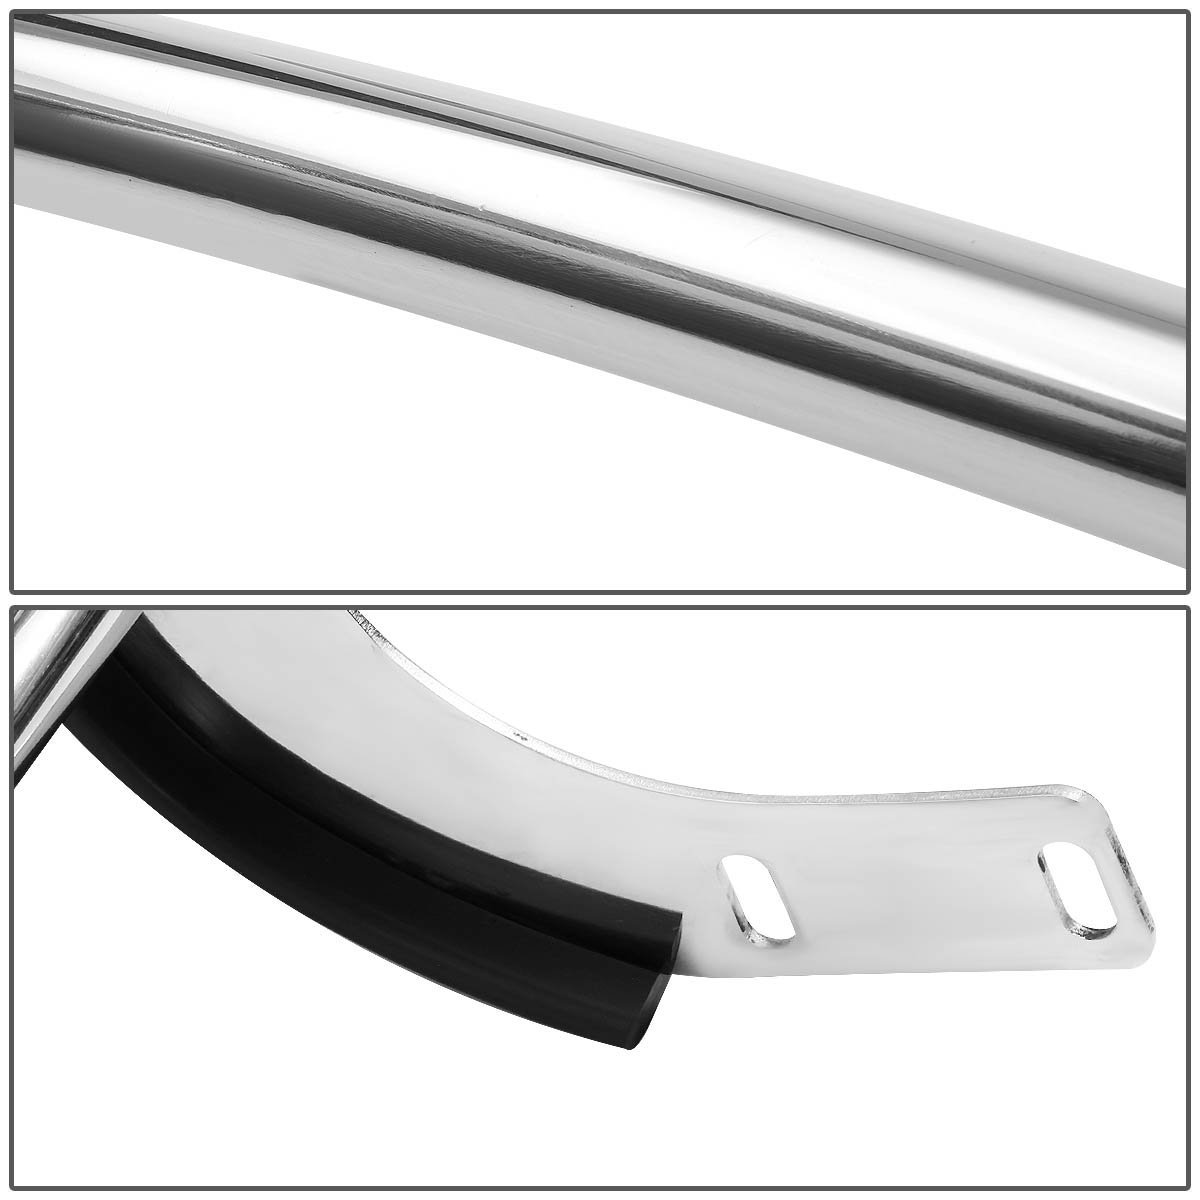 05 10 Honda Odyssey Stainless Steel Double Bar Rear Bumper Protector Off Road Guard For Minivan Chrome